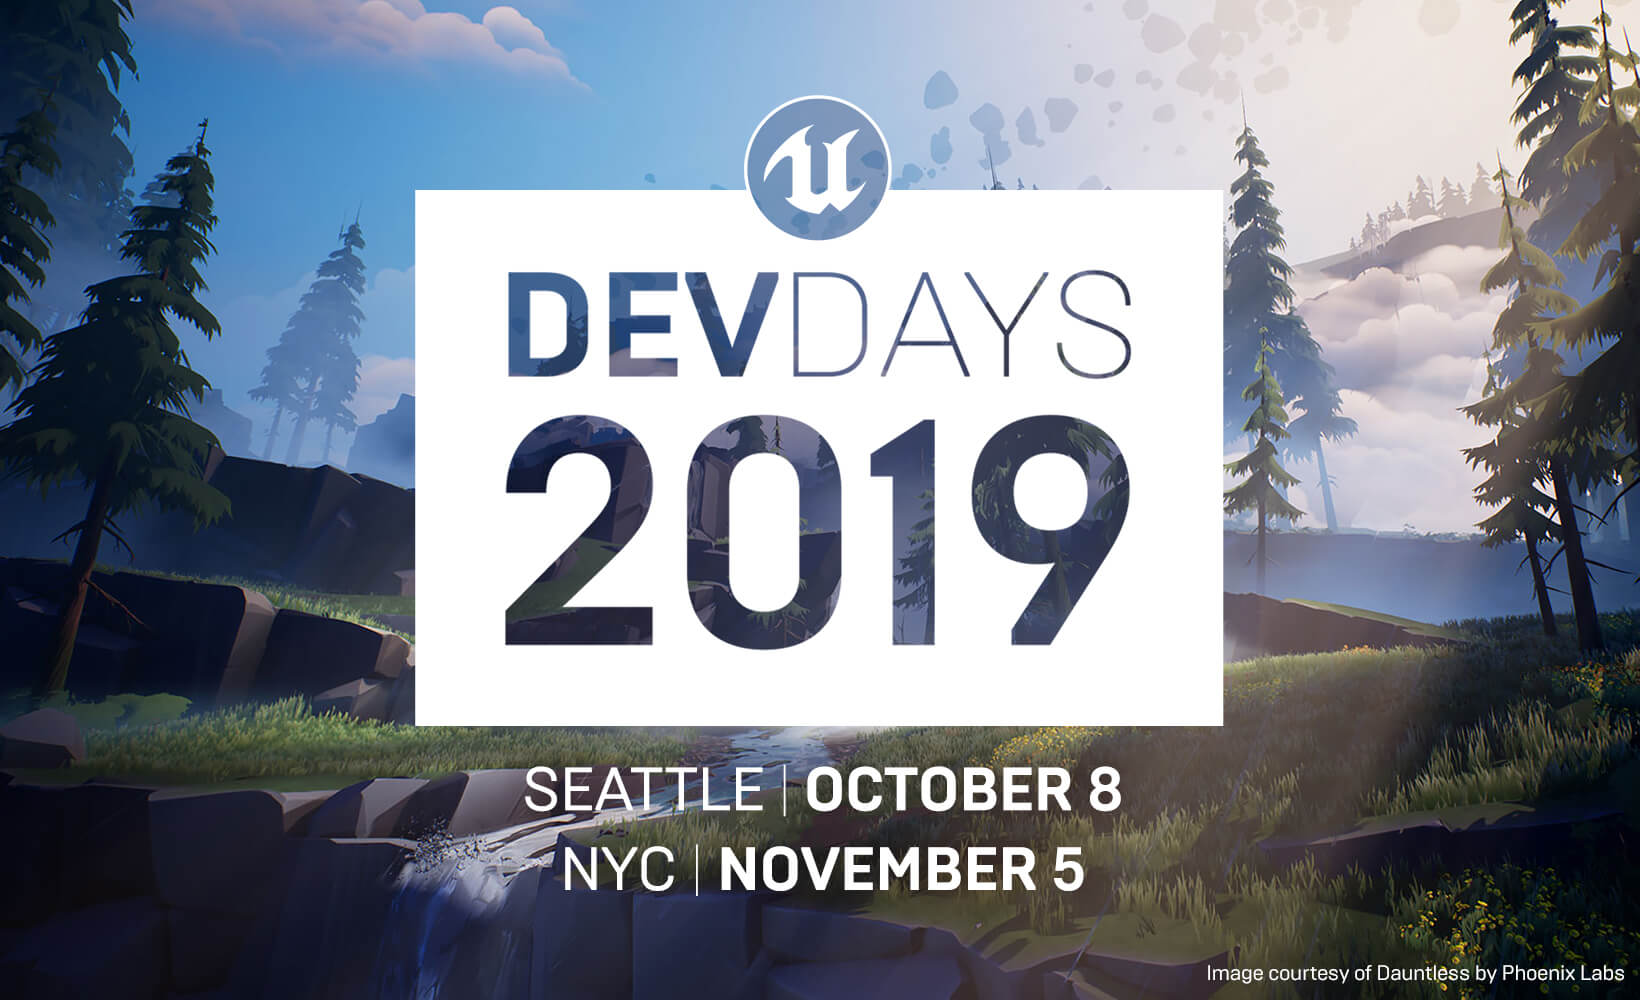 Events_DevDays2019_blog_body_image.jpg